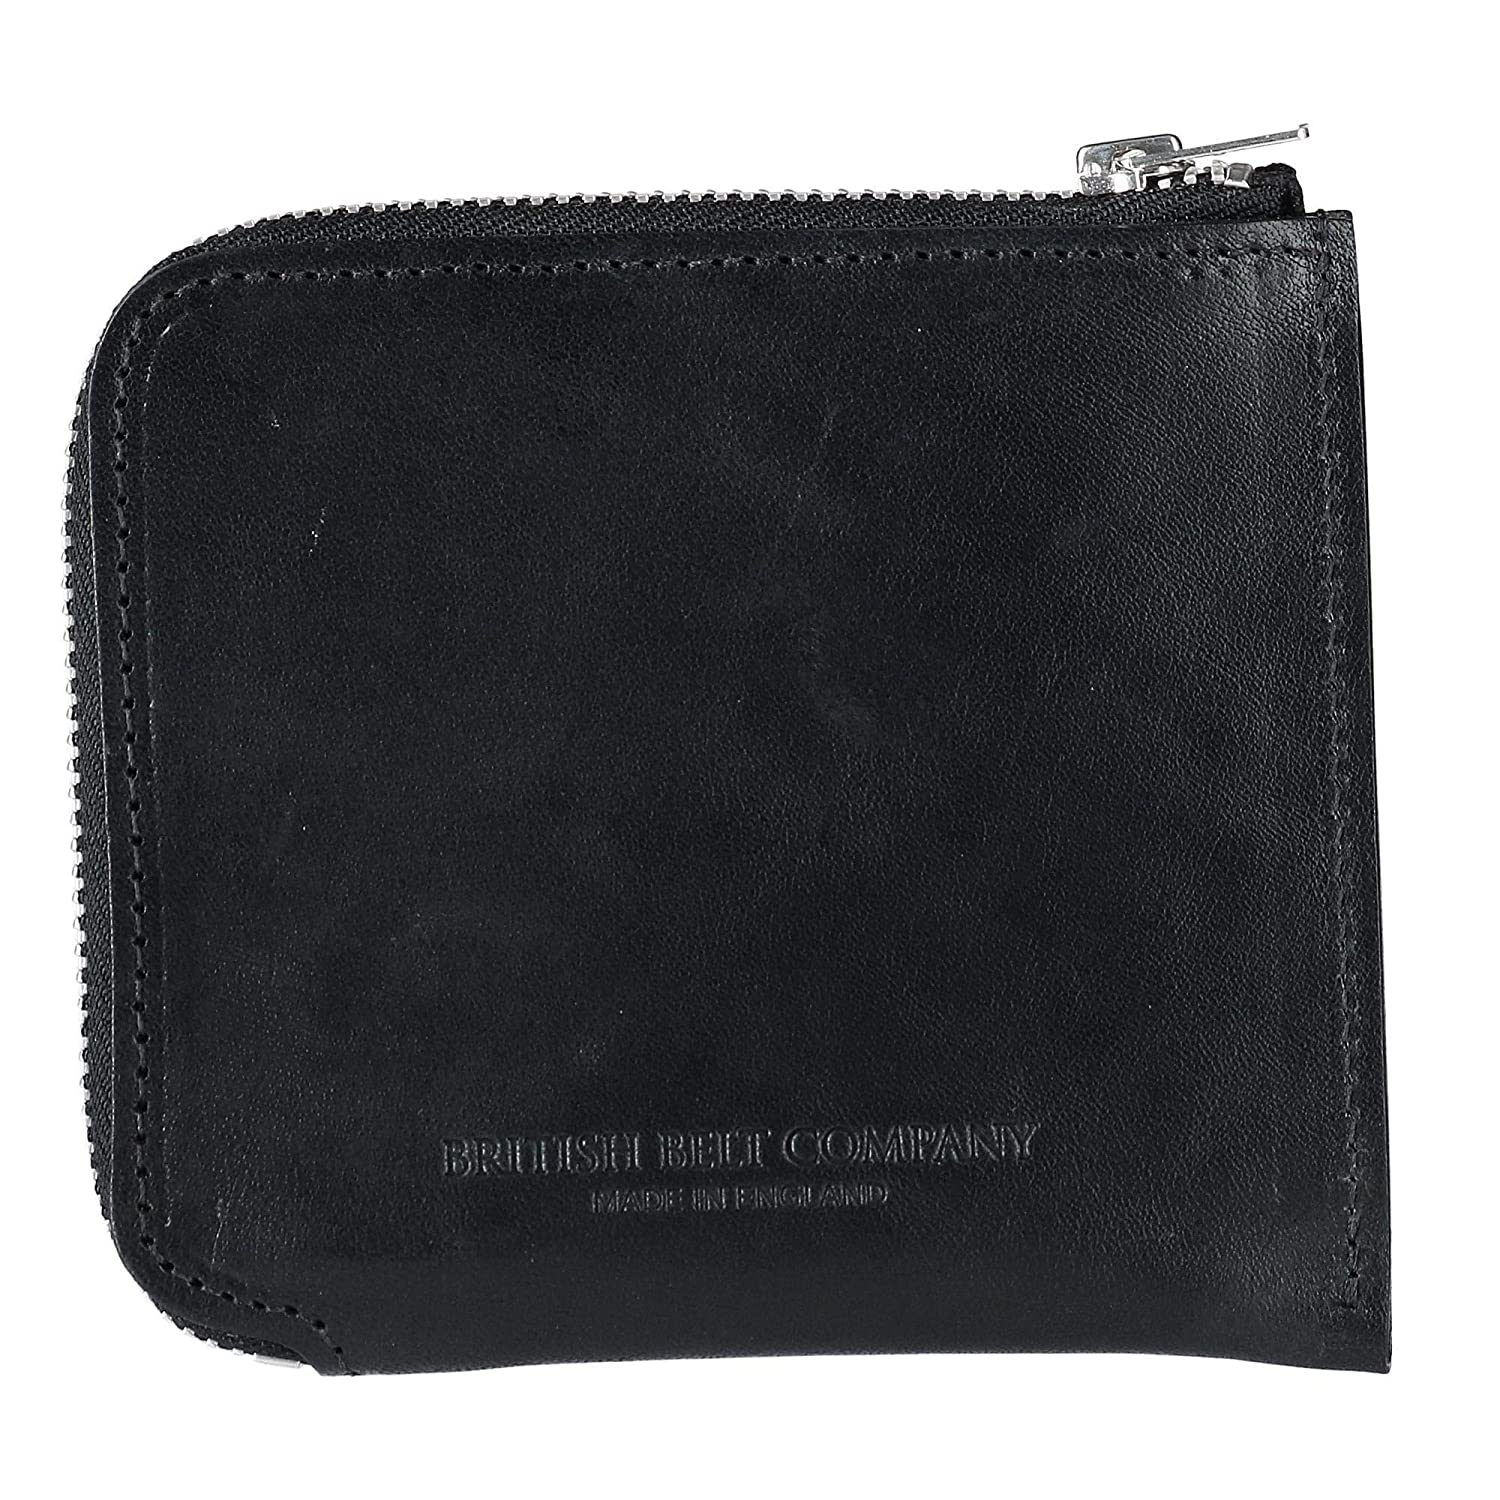 7e5bb577bbe7 The British Belt Company Italian Leather Zip-Around Wallet, Black at Amazon  Men's Clothing store: